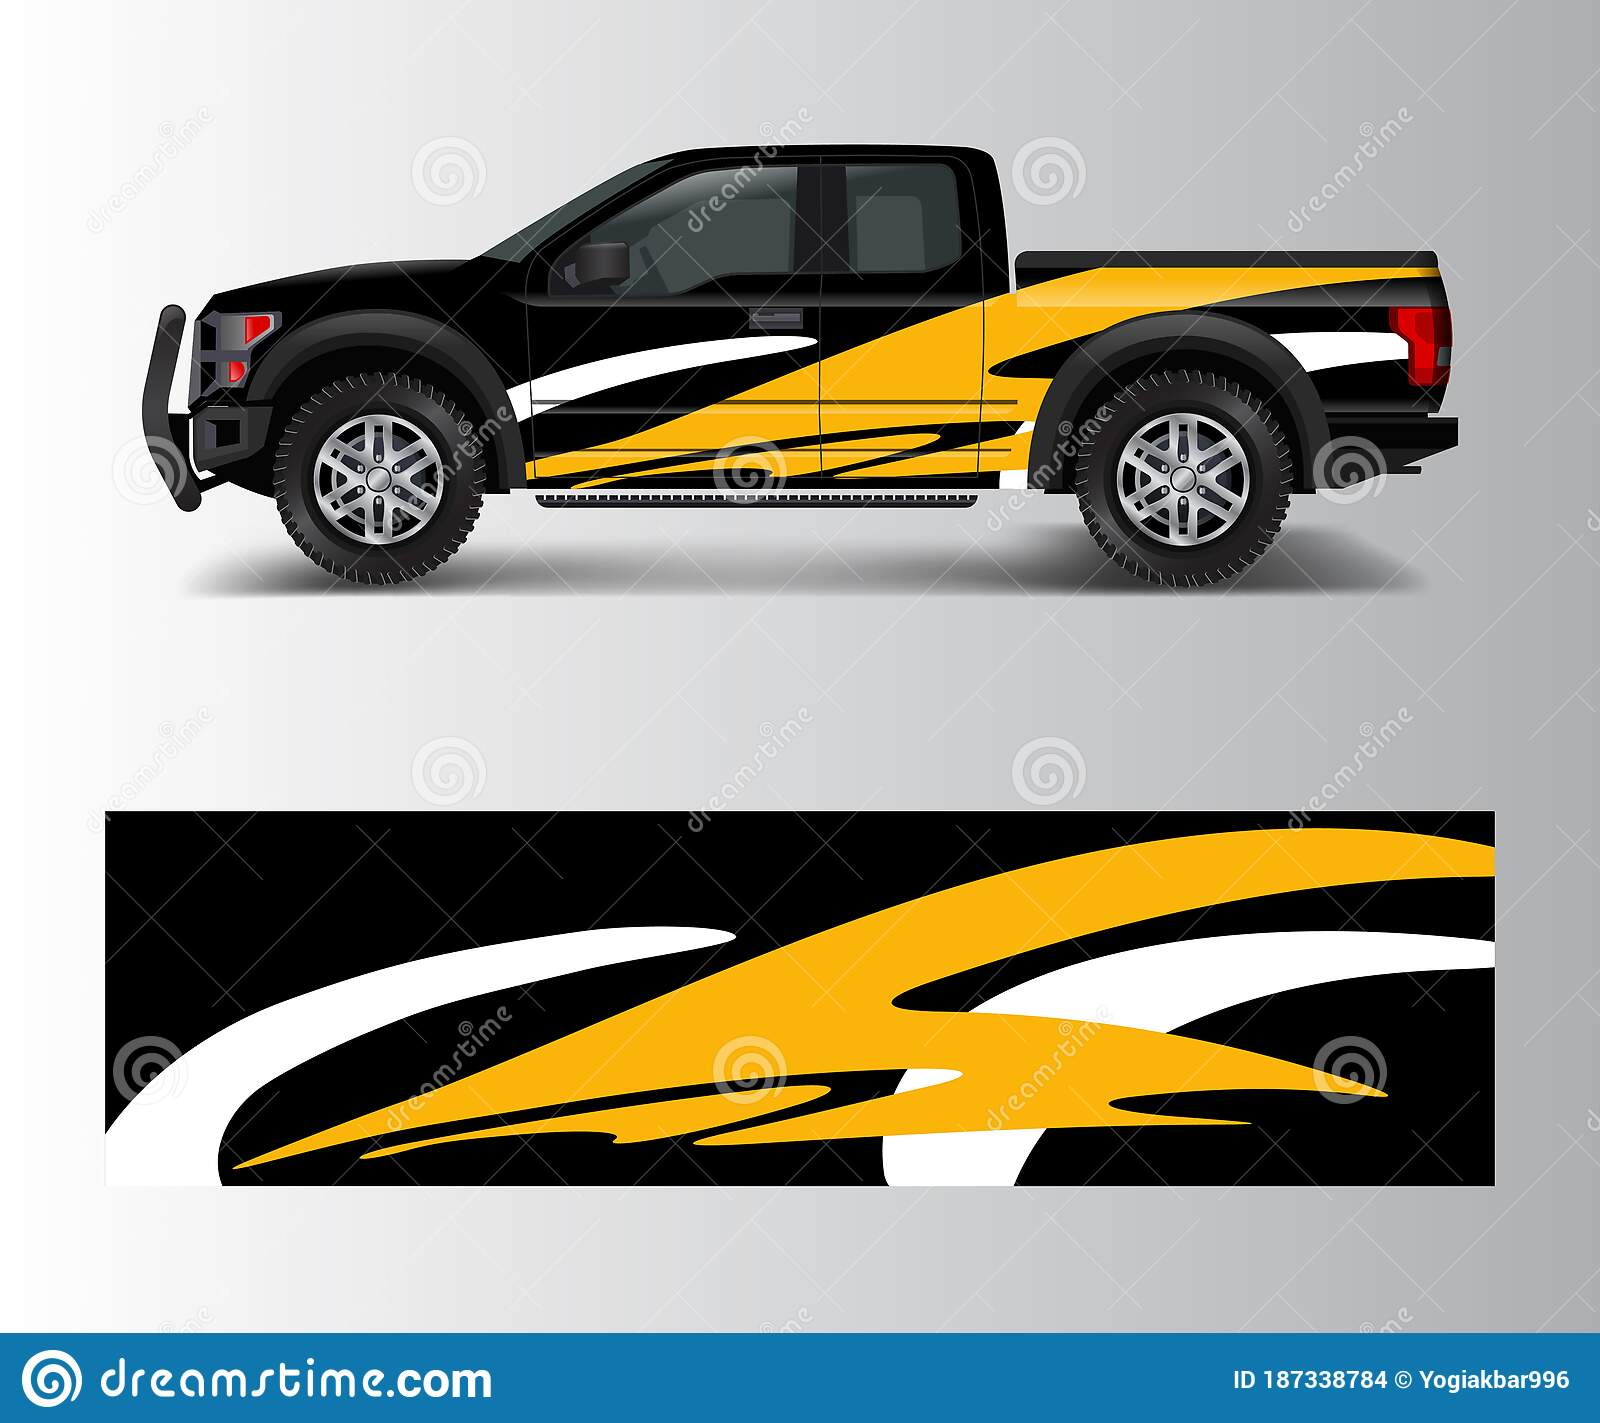 Racing Graphic Background Vector For Truck Pickup And Vehicle Branding Vinyl And Wrap Design Vector Stock Vector Illustration Of Automotive Sport 187338784